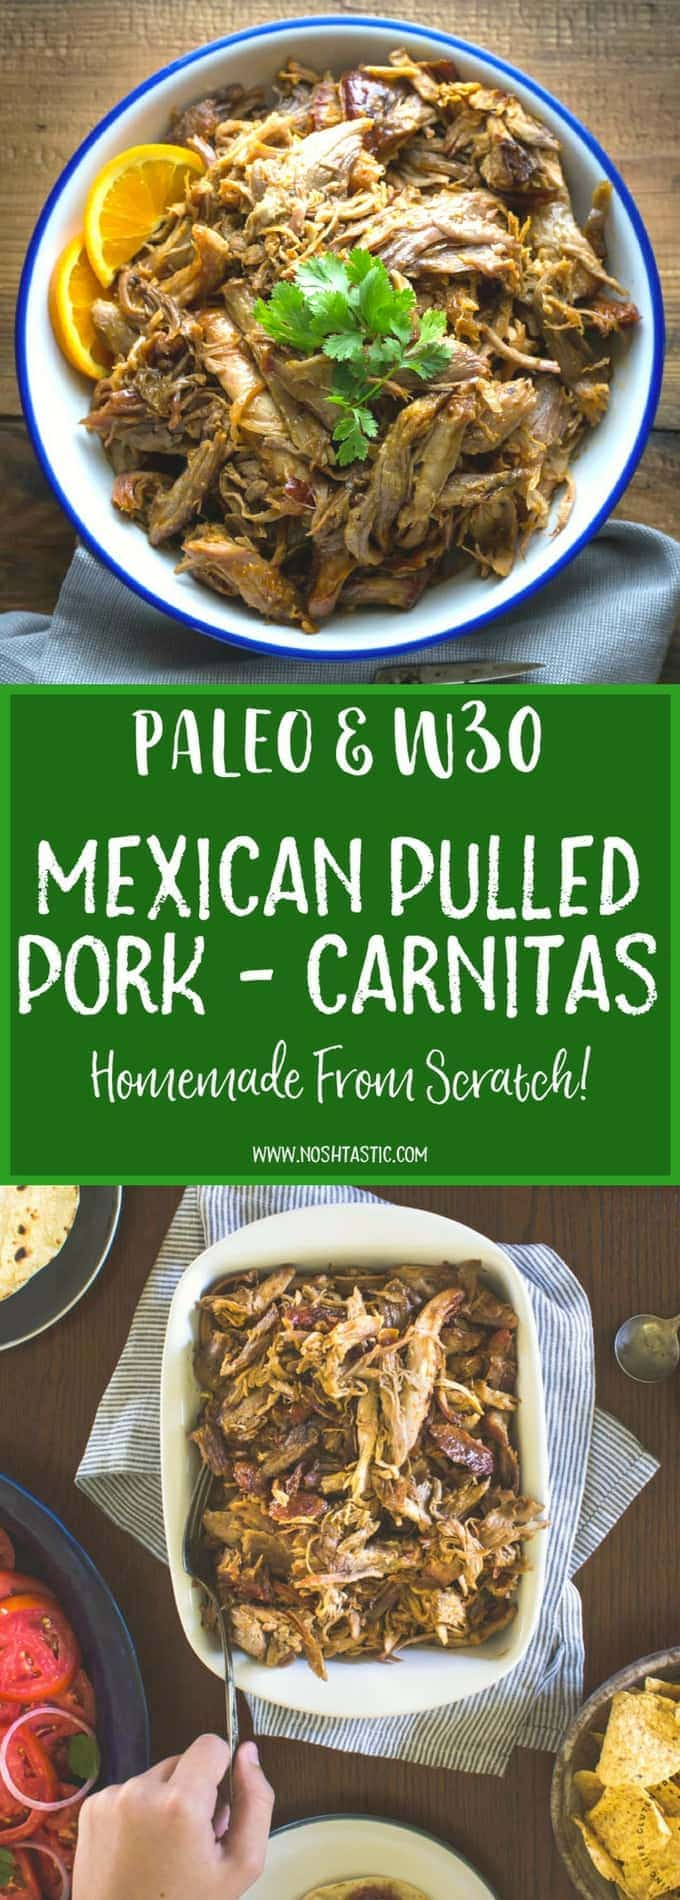 Fabulous easy Paleo Carnitas - Mexican Pulled Pork, make it easily in the oven, or on the grill! | Paleo, gluten free, whole30, healthy and low carb